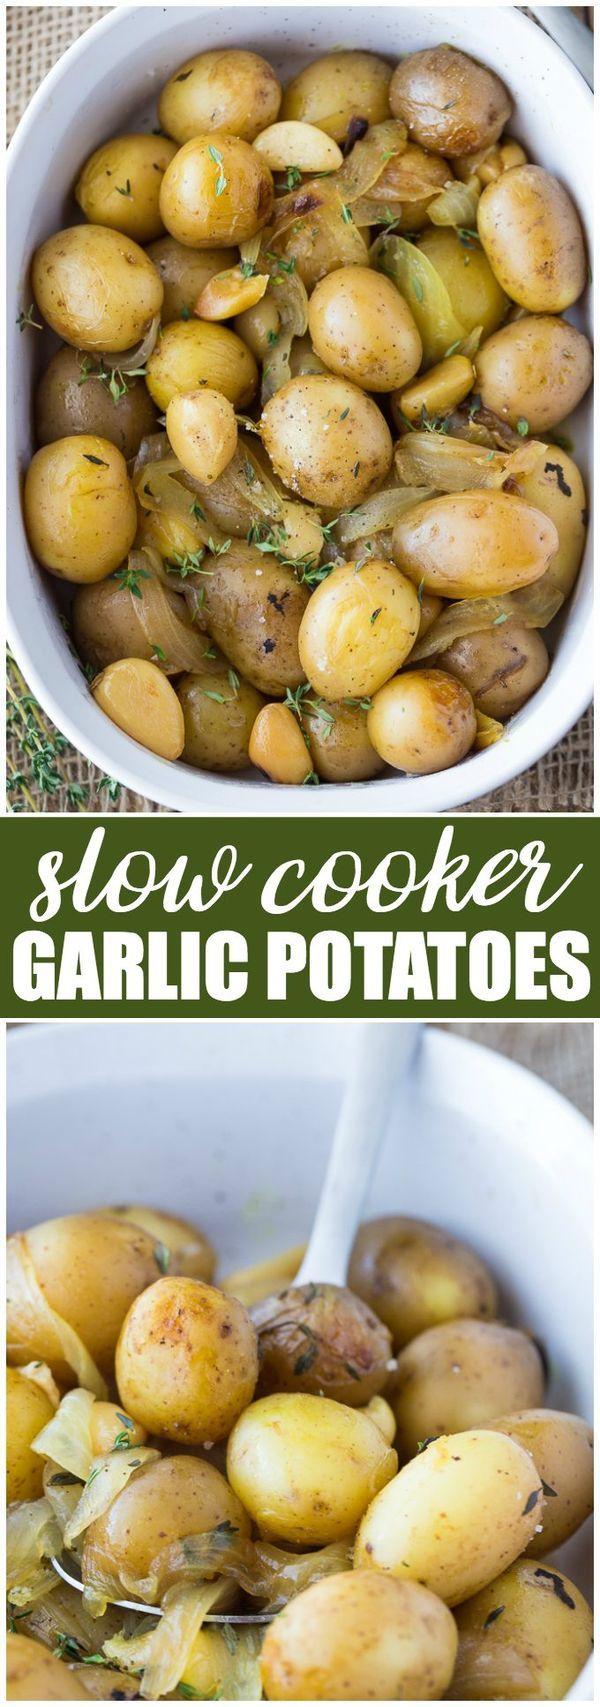 Slow Cooker Garlic Potatoes - Perfectly roasted, tender and full of delicious garlic flavour. Don't worry, the garlic isn't overpowering and provides the perfect hint to each bite!